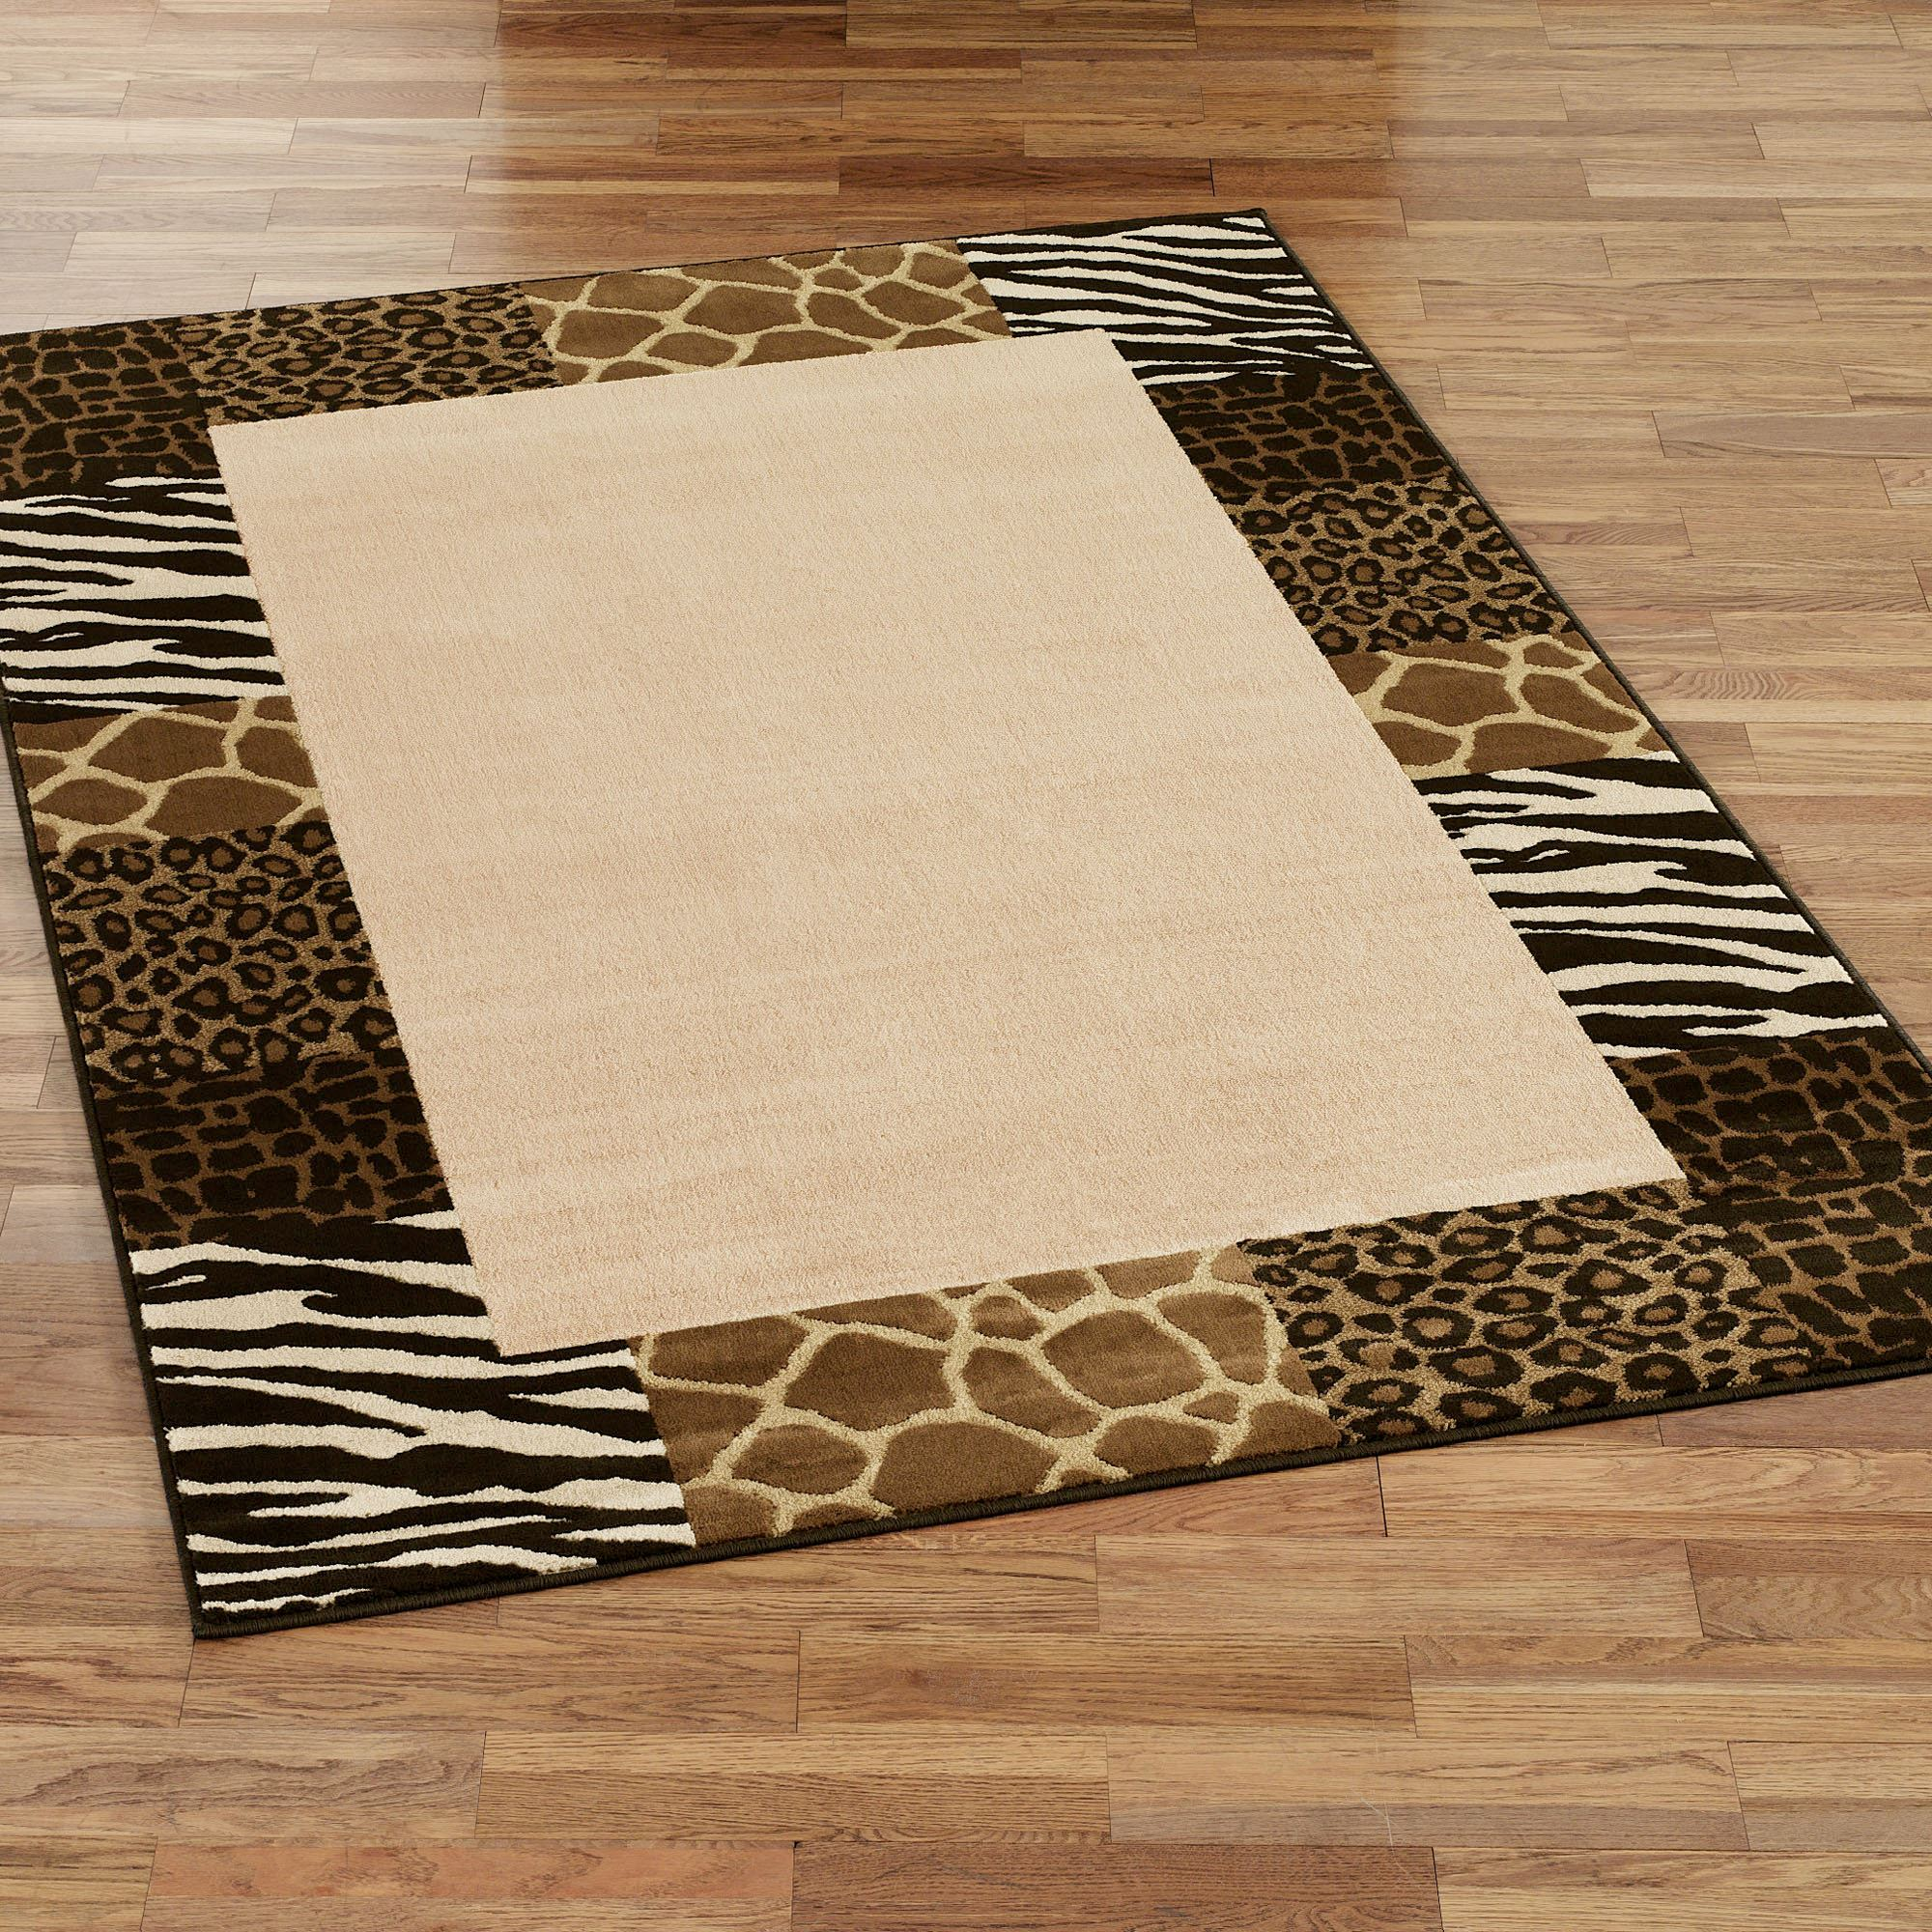 Safari Collage Animal Print Border Area Rugs